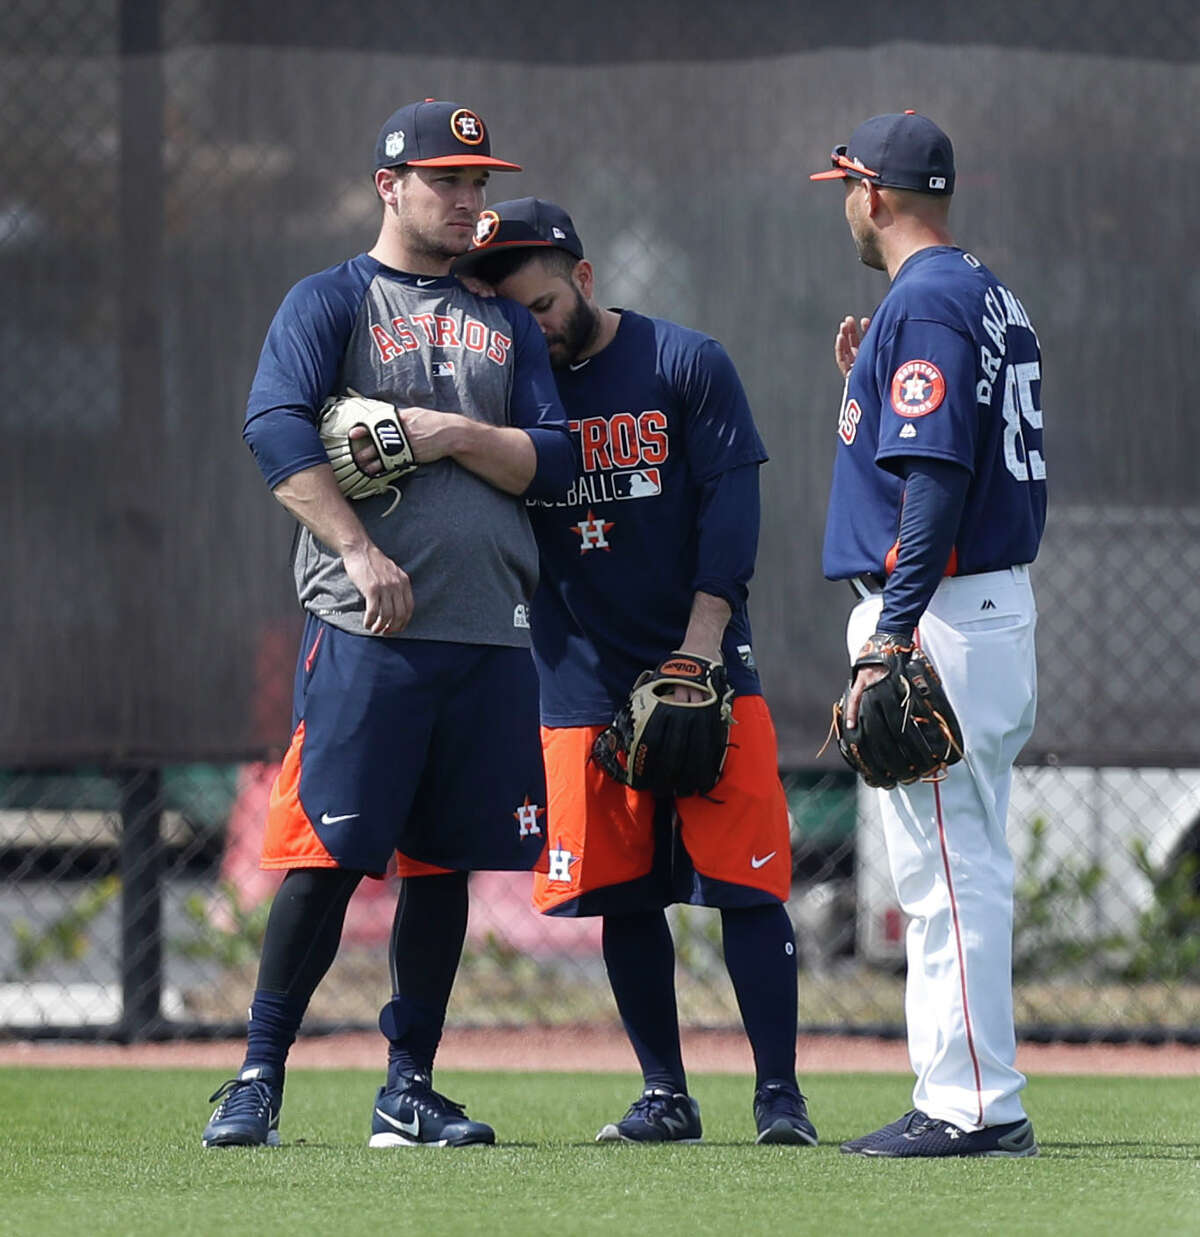 Houston Astros second baseman Jose Altuve leans against Alex Bregman as they chatted with bullpen catcher Javier Bracamonte while they worked out with the other position players who came to camp early during spring training at The Ballpark of the Palm Beaches, in West Palm Beach, Florida, Thursday, February 16, 2017.